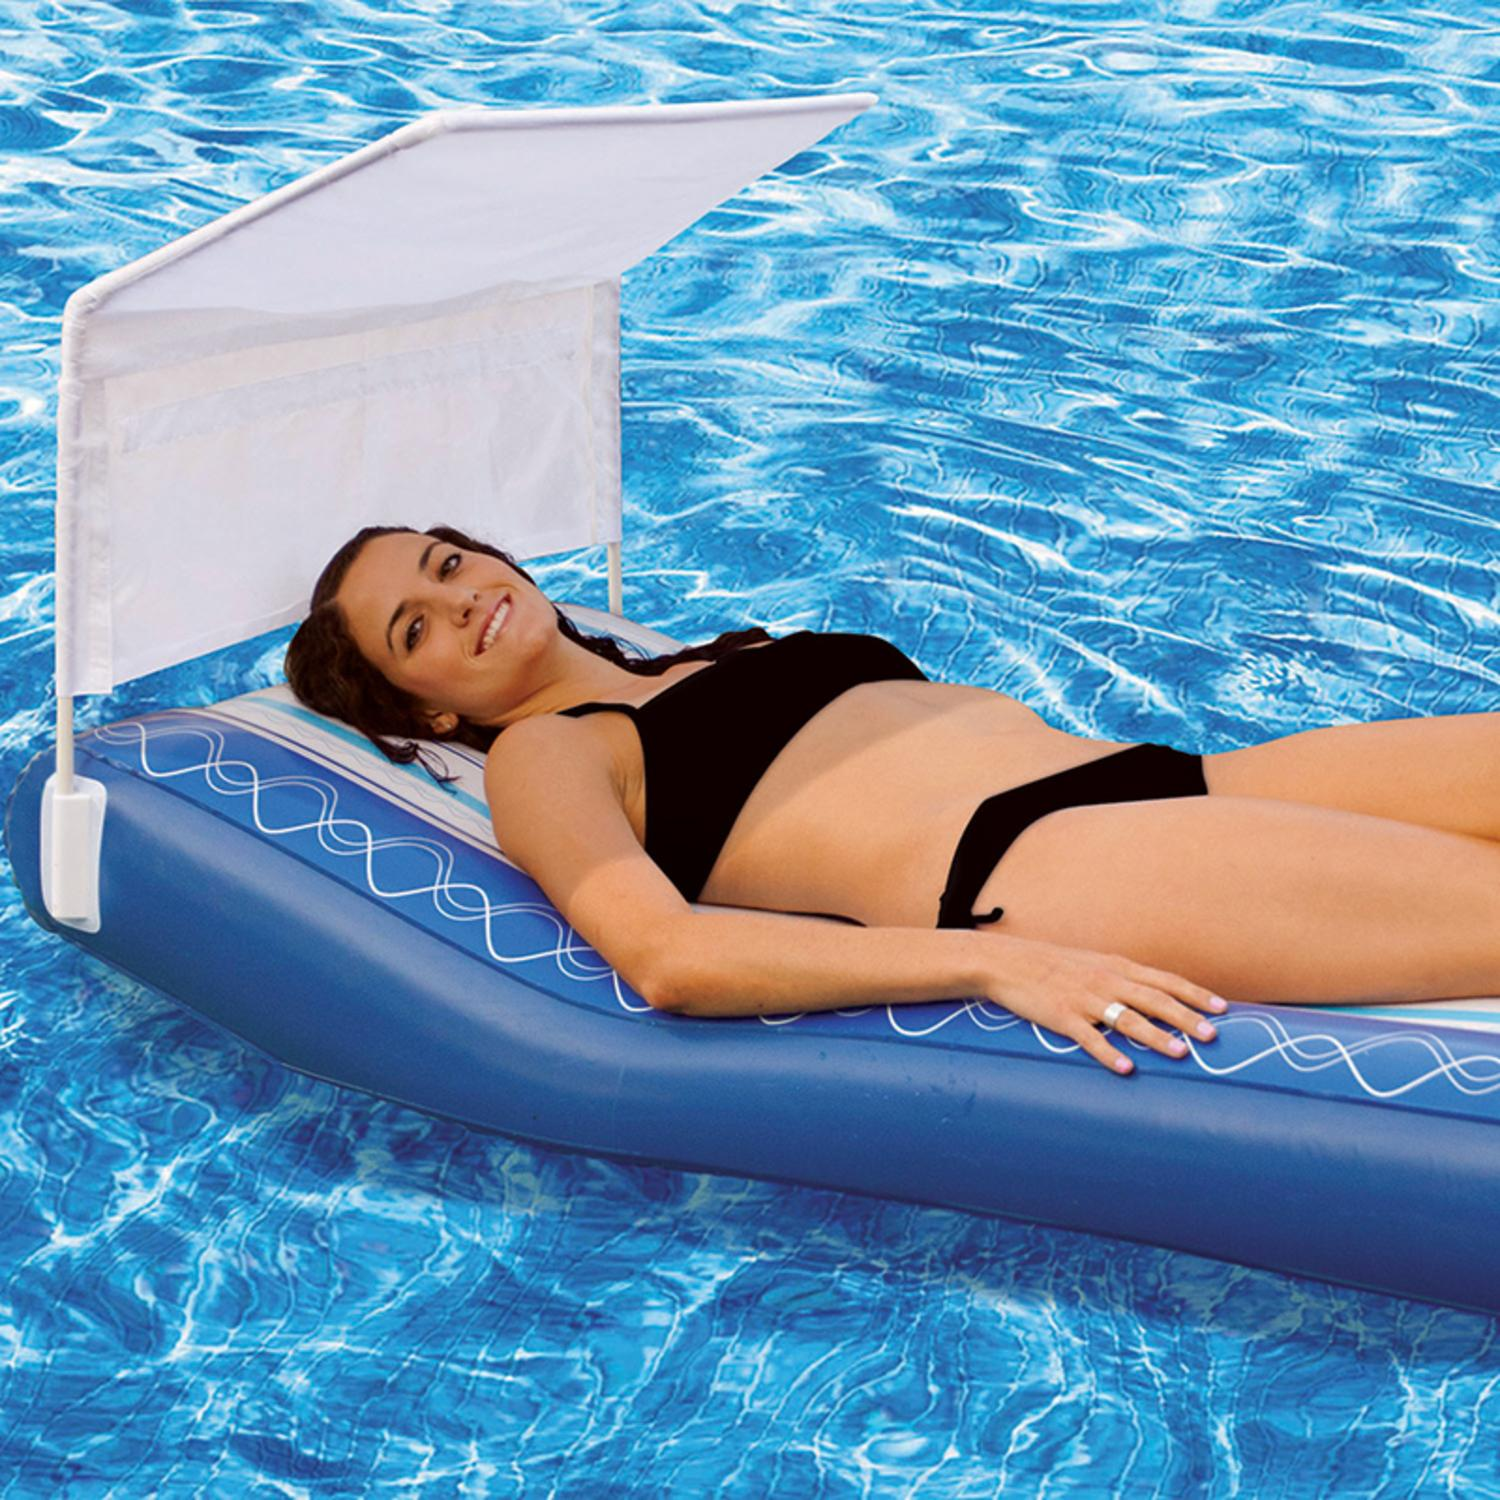 """75"""" Blue and White Inflatable Hampton Lounge Swimming Pool Mattress Float with Removable Sunshade by Swim Central"""